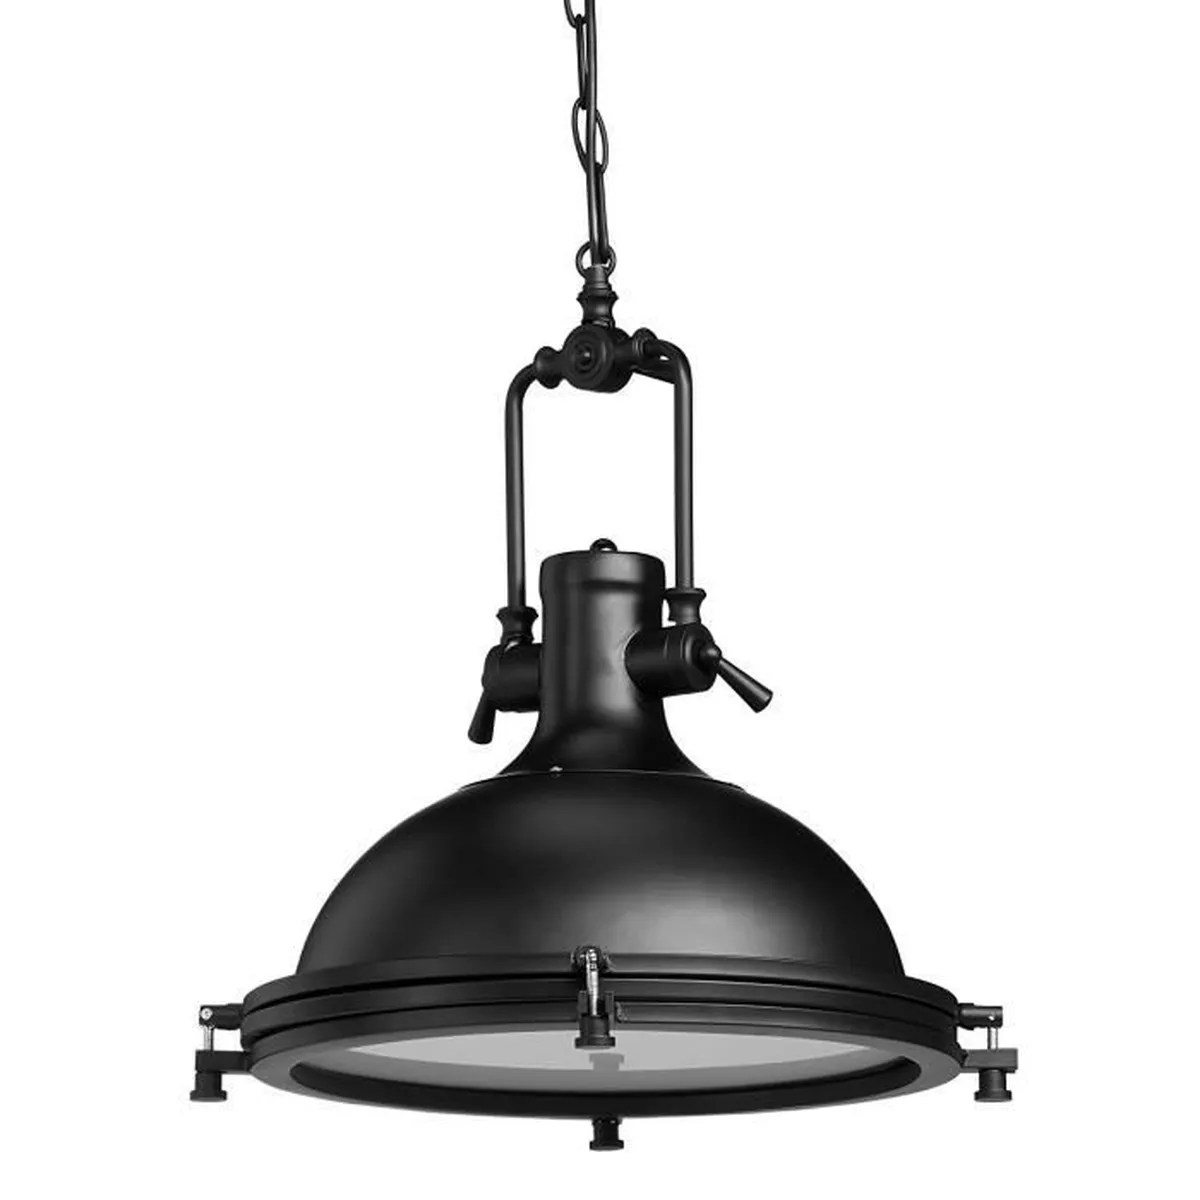 Lampe Suspension Style Industriel Lampe à Suspension Style Industriel Fer Et Verre Luminaire